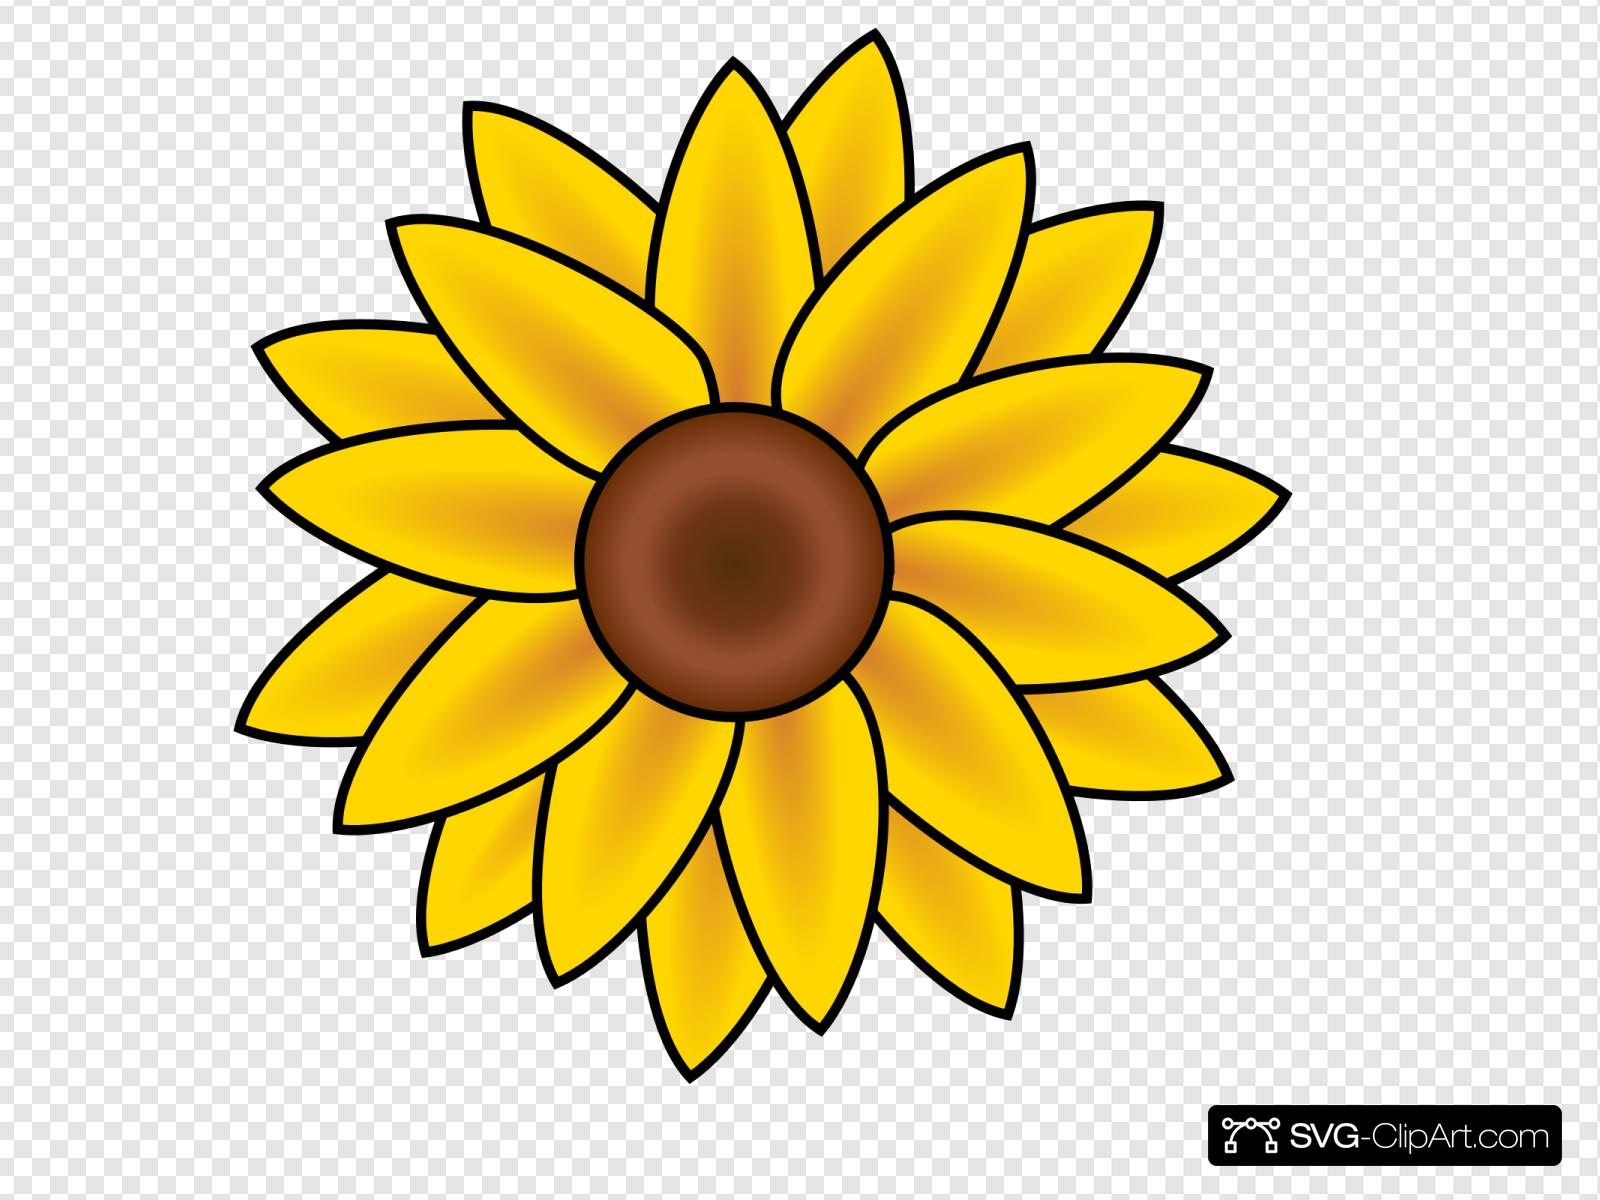 Sunflower Clip art, Icon and SVG.